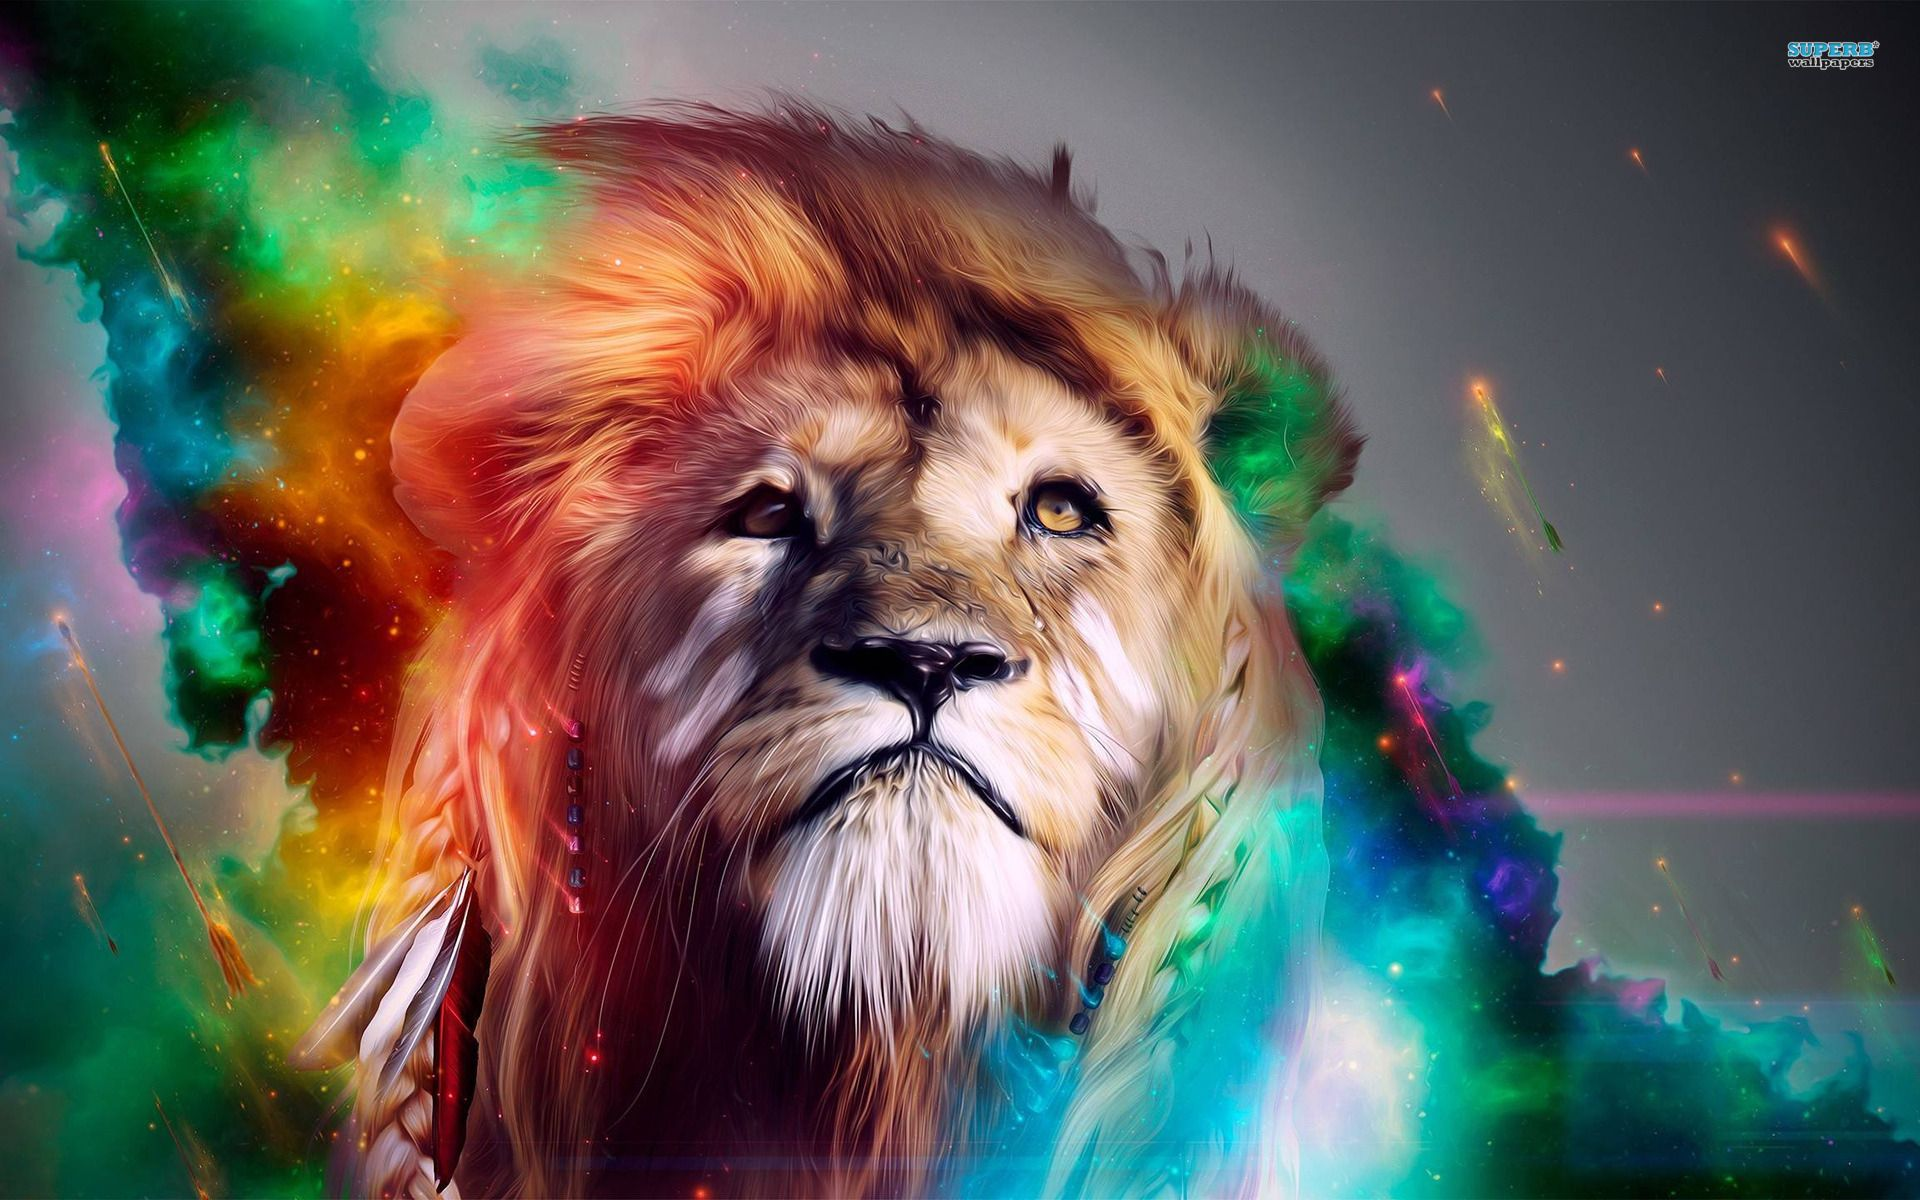 Free Lion Wallpaper Mobile With Images Colorful Lion Art Lion